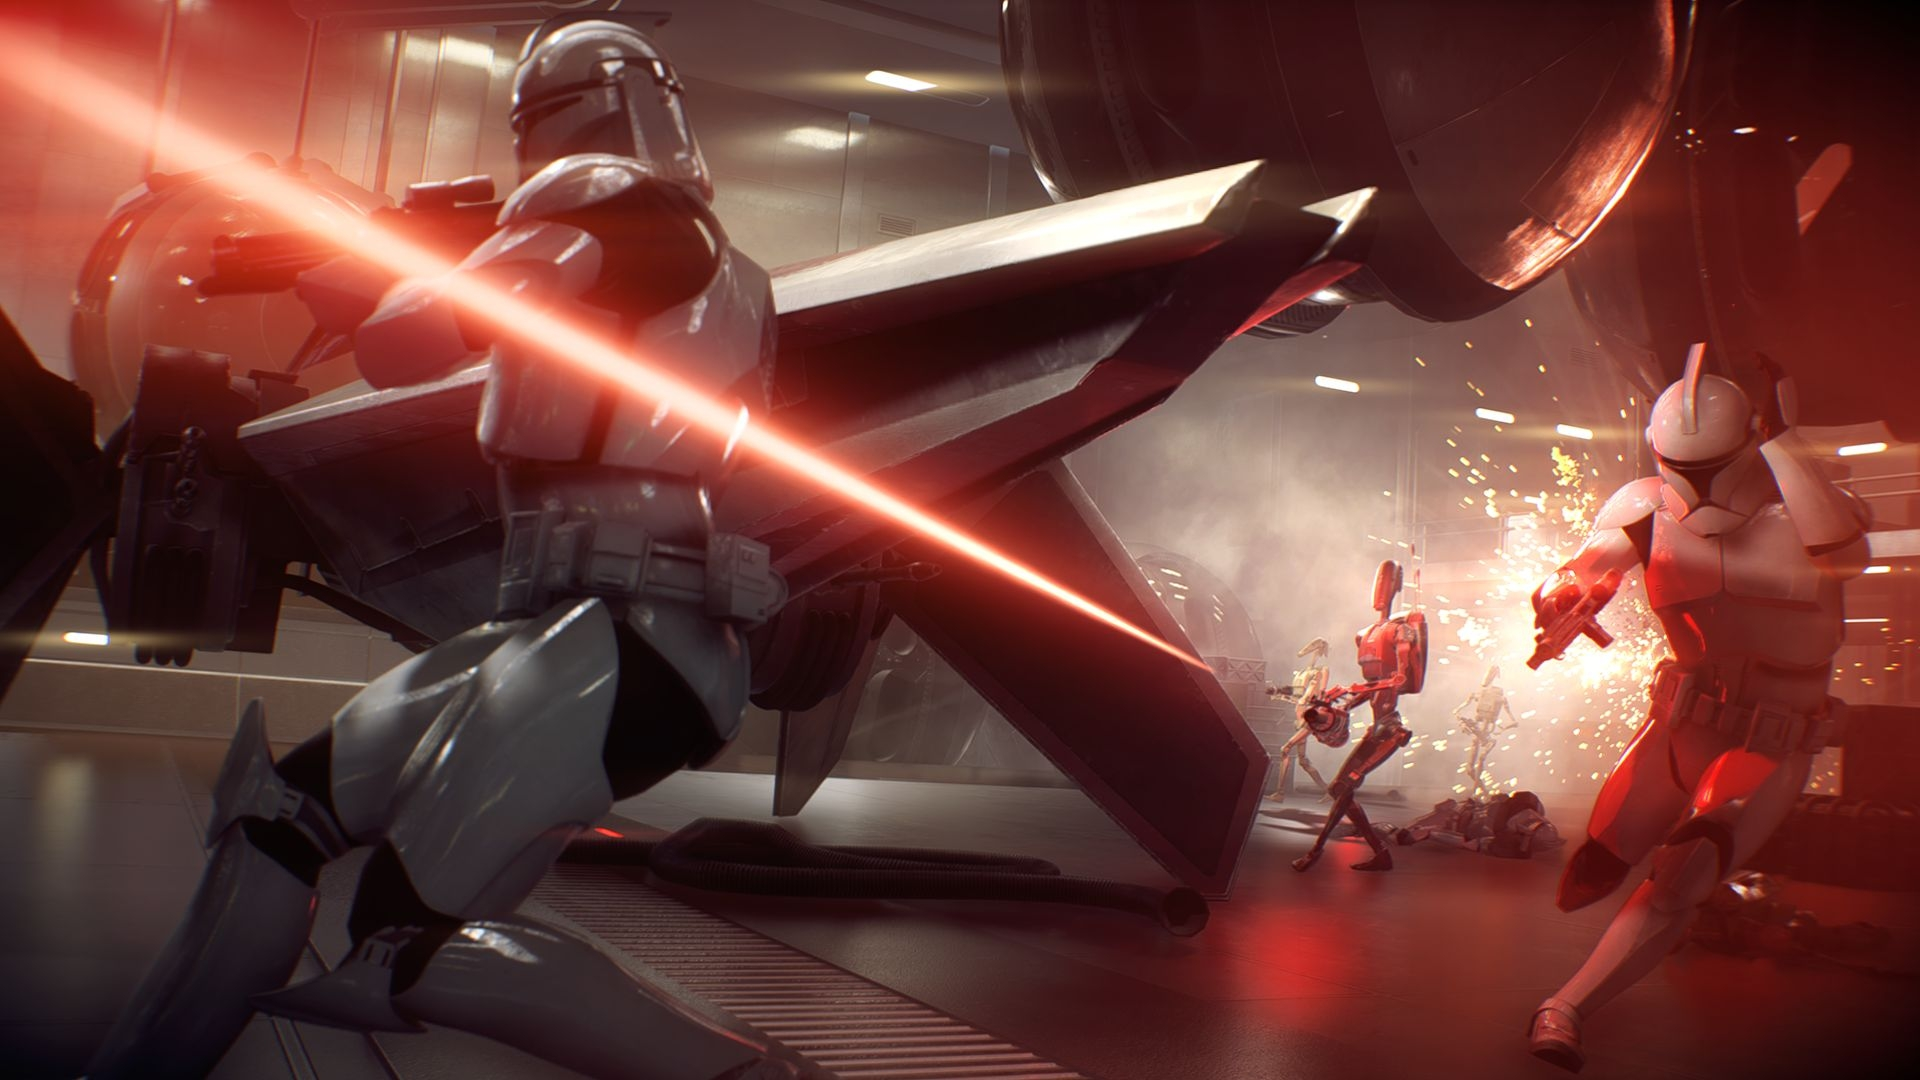 star wars battlefront ii patch 0 2 now out on pc and ps4 includes bug fixes and more